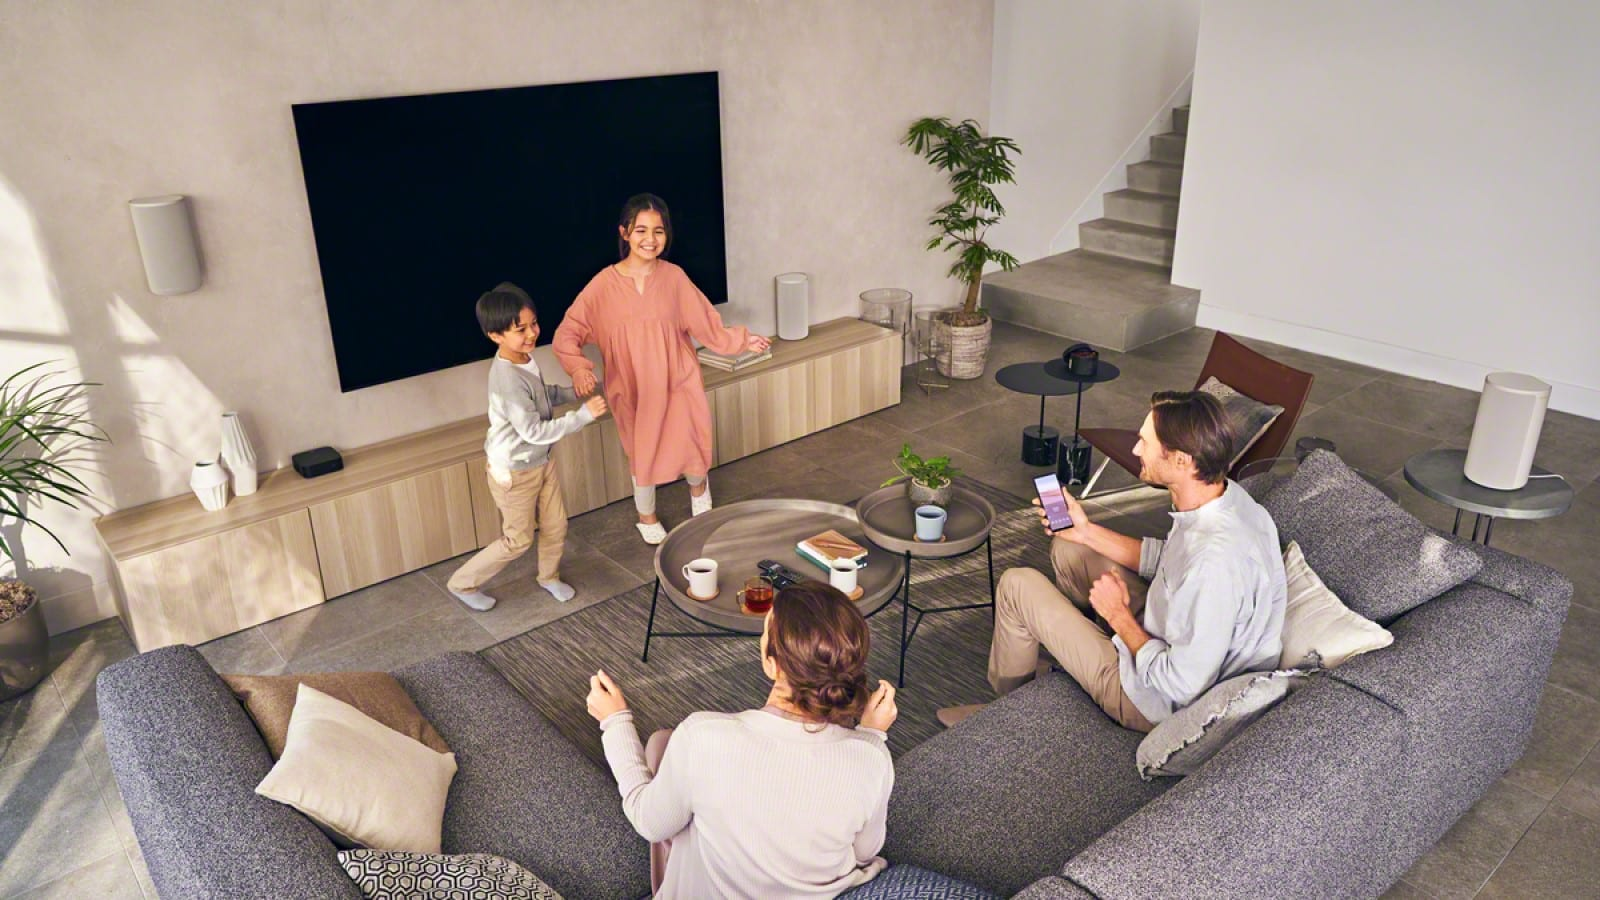 sony ht-a9 wireless speaker setup in a living room with a family listening to music